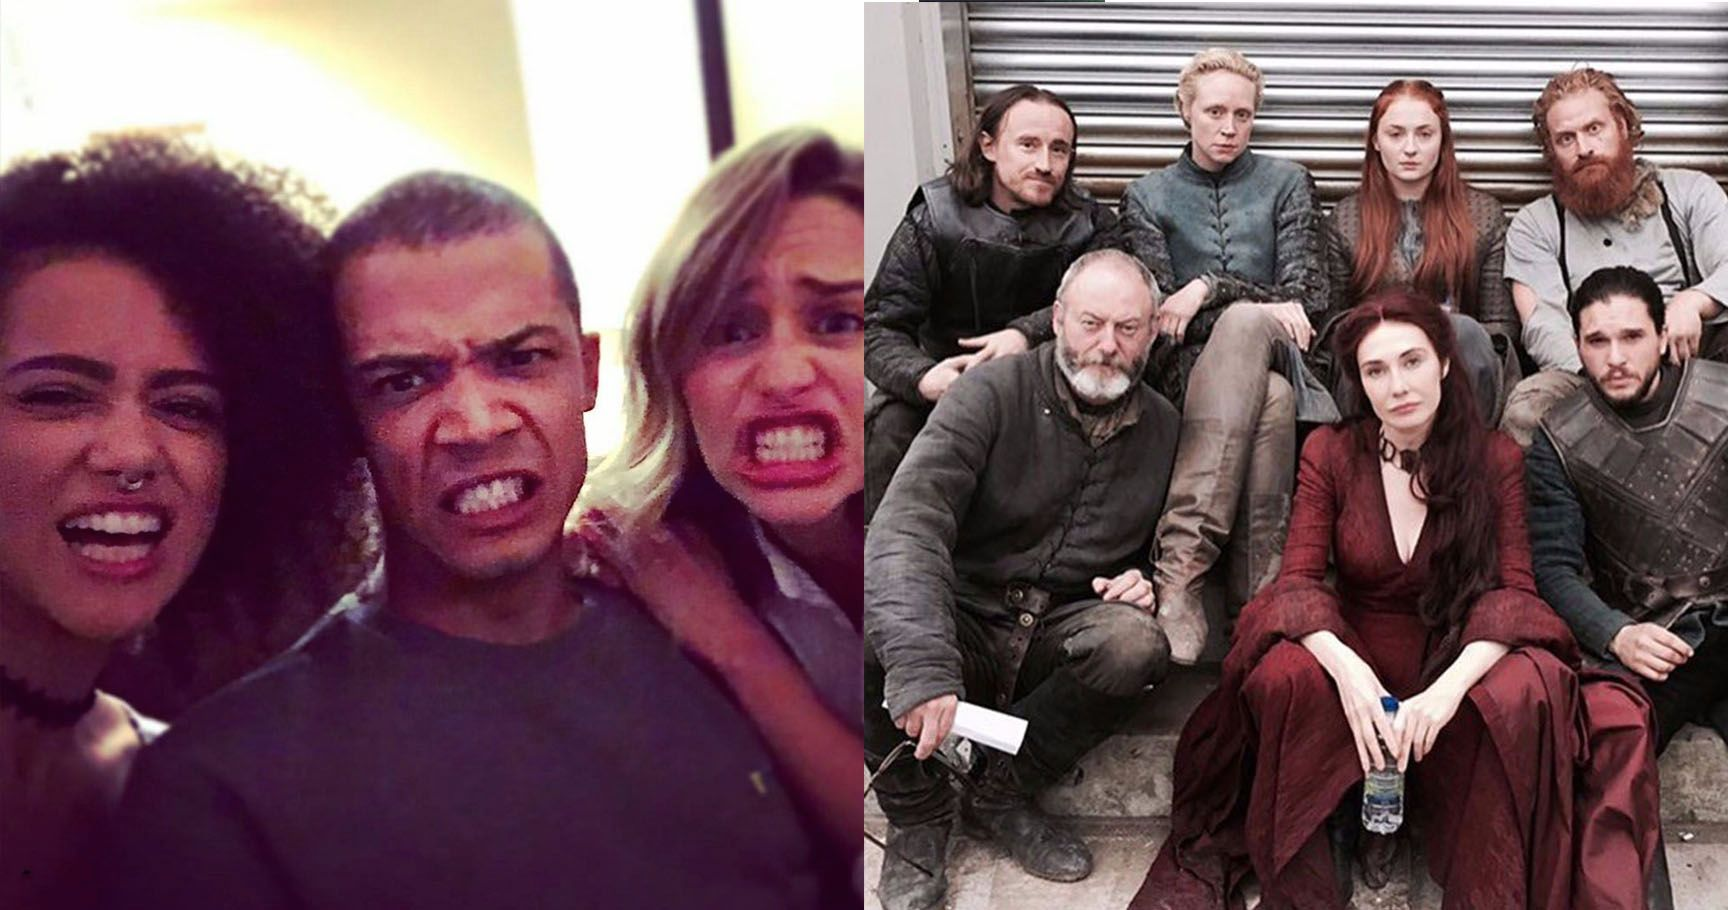 18 Things Most Fans Don't Know About The Cast Of 'Game Of Thrones'